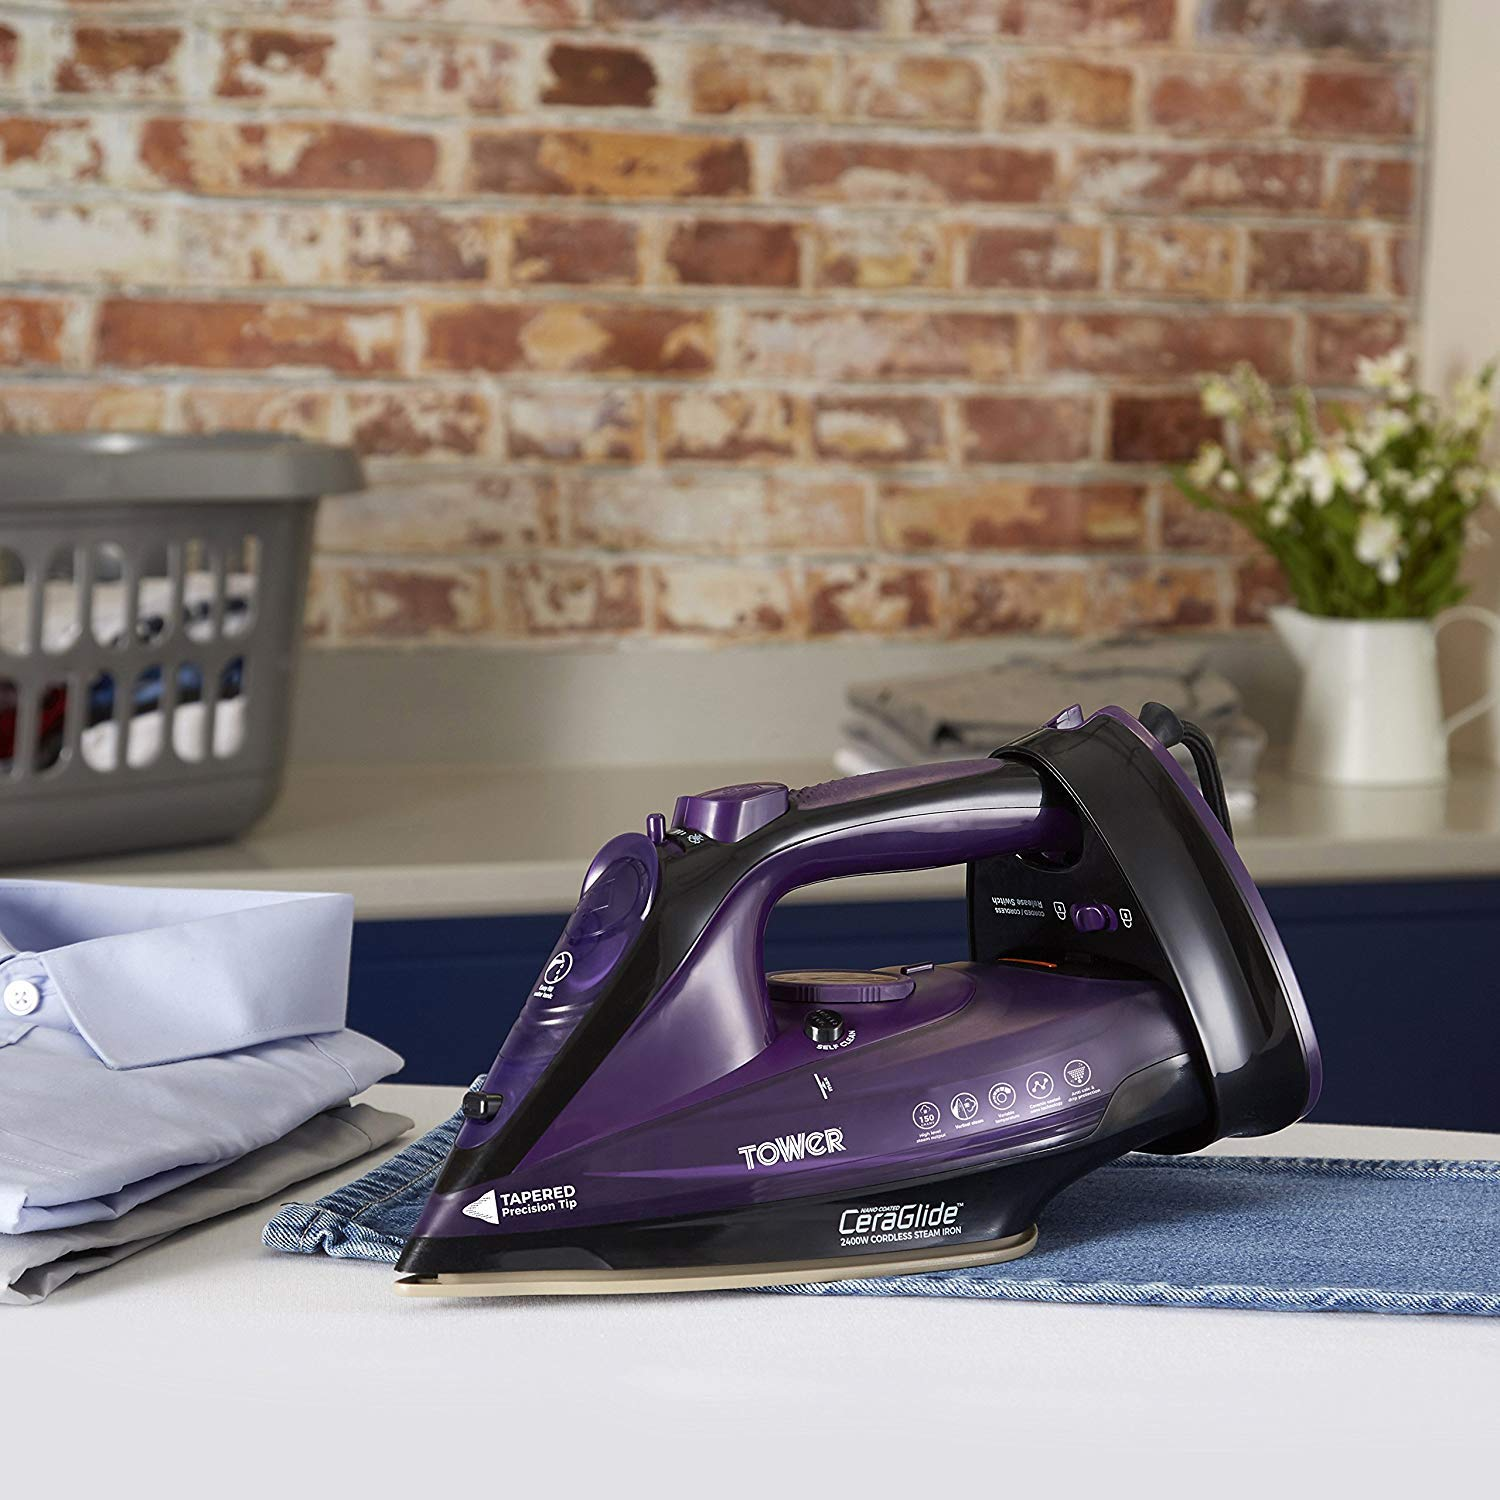 Tower T22008G CeraGlide 2-in-1 Cord or Cordless Steam Iron with Non-Stick Ceramic Soleplate Anti Drip 160 g Steam Boost Anti Scale Grey 2400 W Anti Calc and Self Cleaning Functions